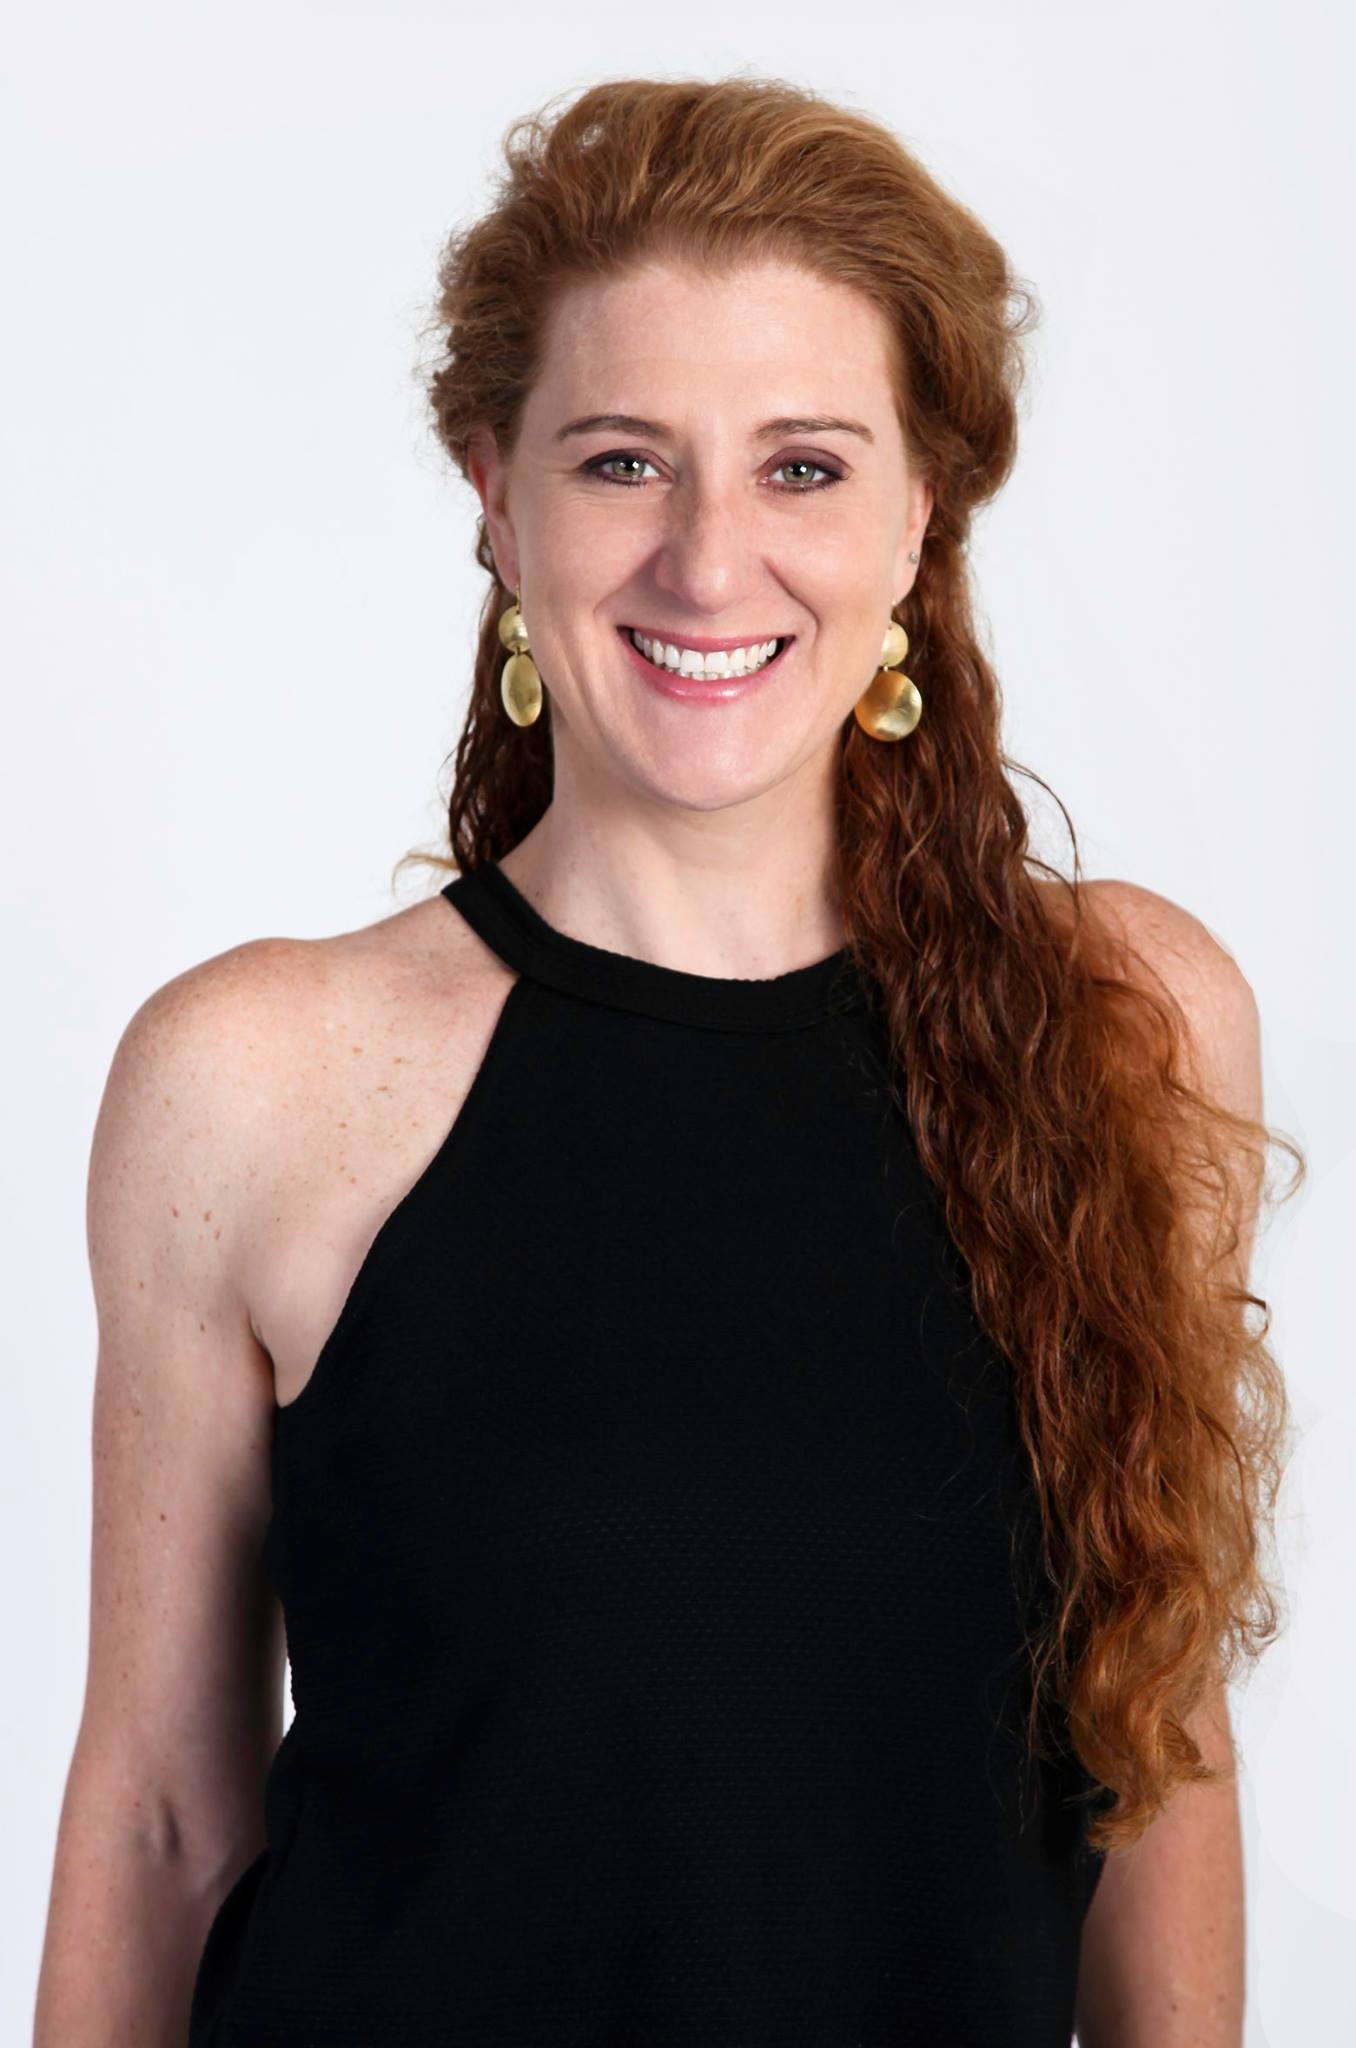 Nicole Bunnell - DirectorBachelor of Applied Science (Physical Education).Diploma of Education.Associate Dance Teacher (DFTA).Cert III in dance performance.Level 2 First Aid.Certificate IV in Workplace Training & Assessment.Over 15 years' experience in teaching VCE dance.VCAA provider ID - 13022